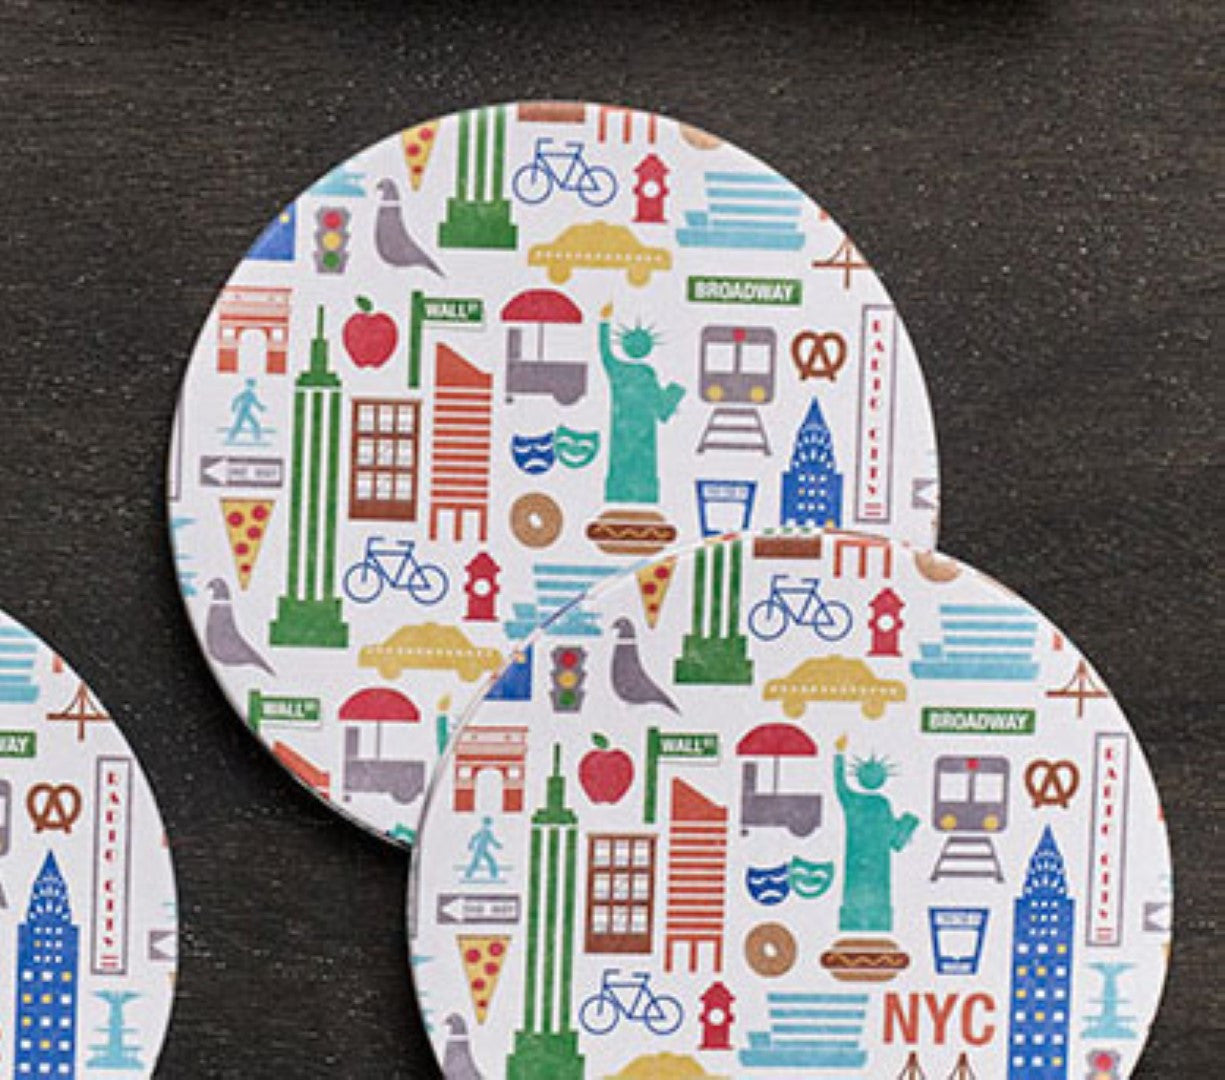 New york city icon coasters design ideas zillymonkey for Coaster design ideas